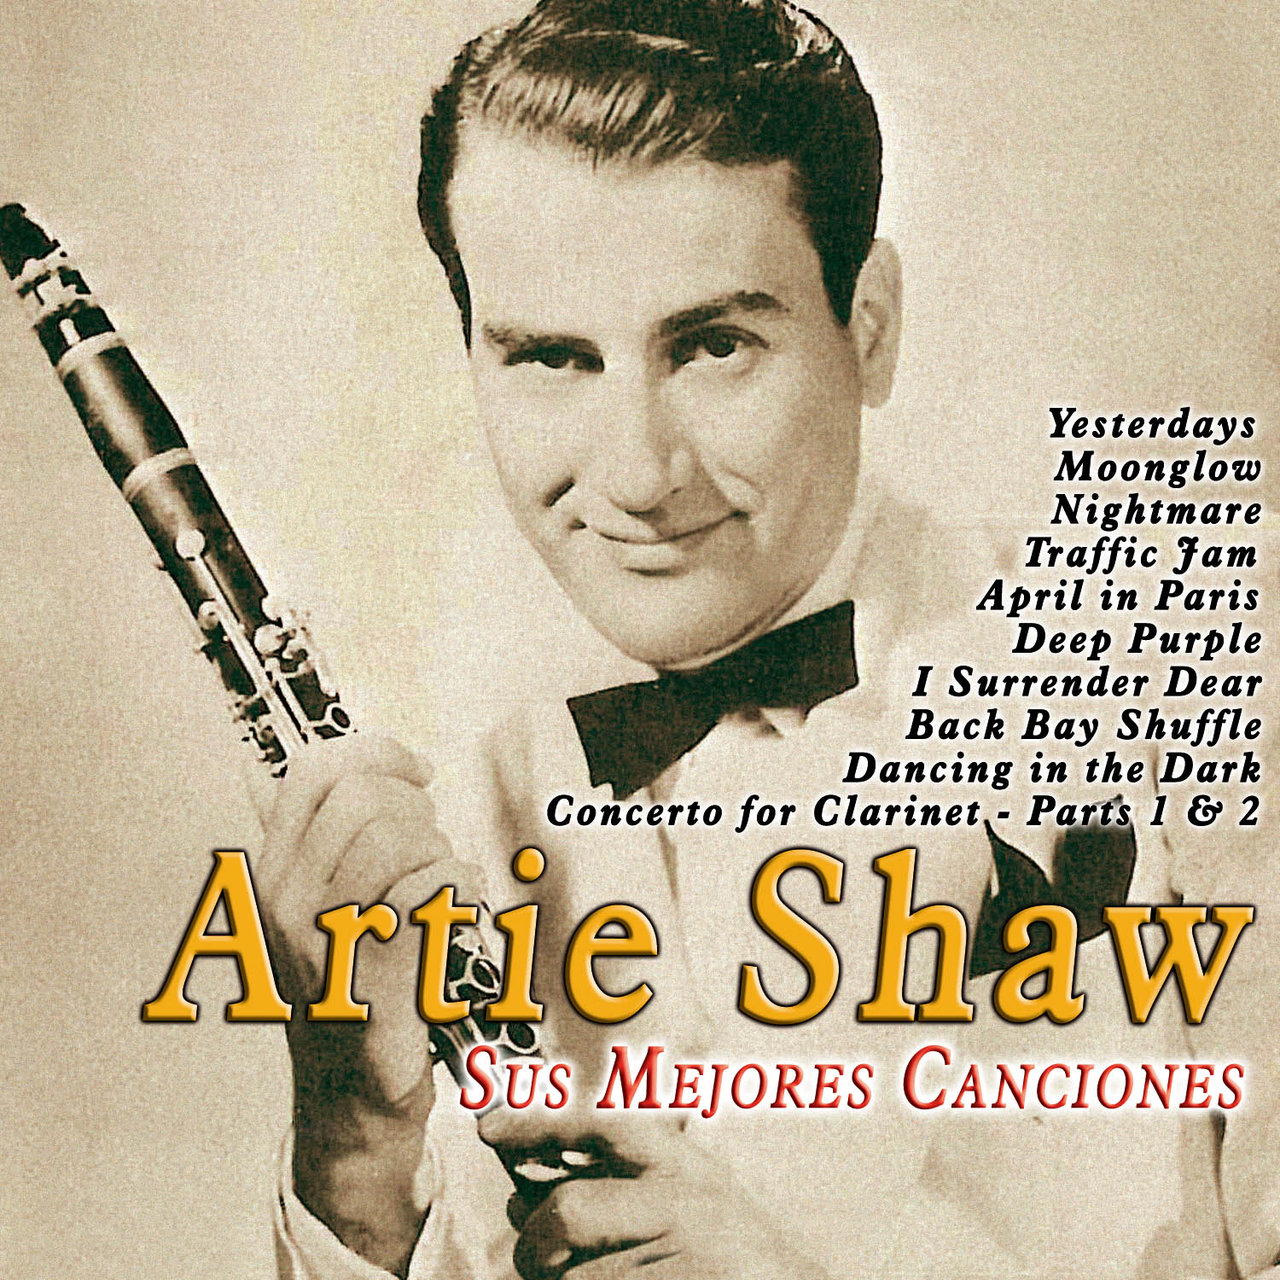 Artie Shaw Yesterdays Tidal Listen To Artie Shaw His Orchestra On Tidal